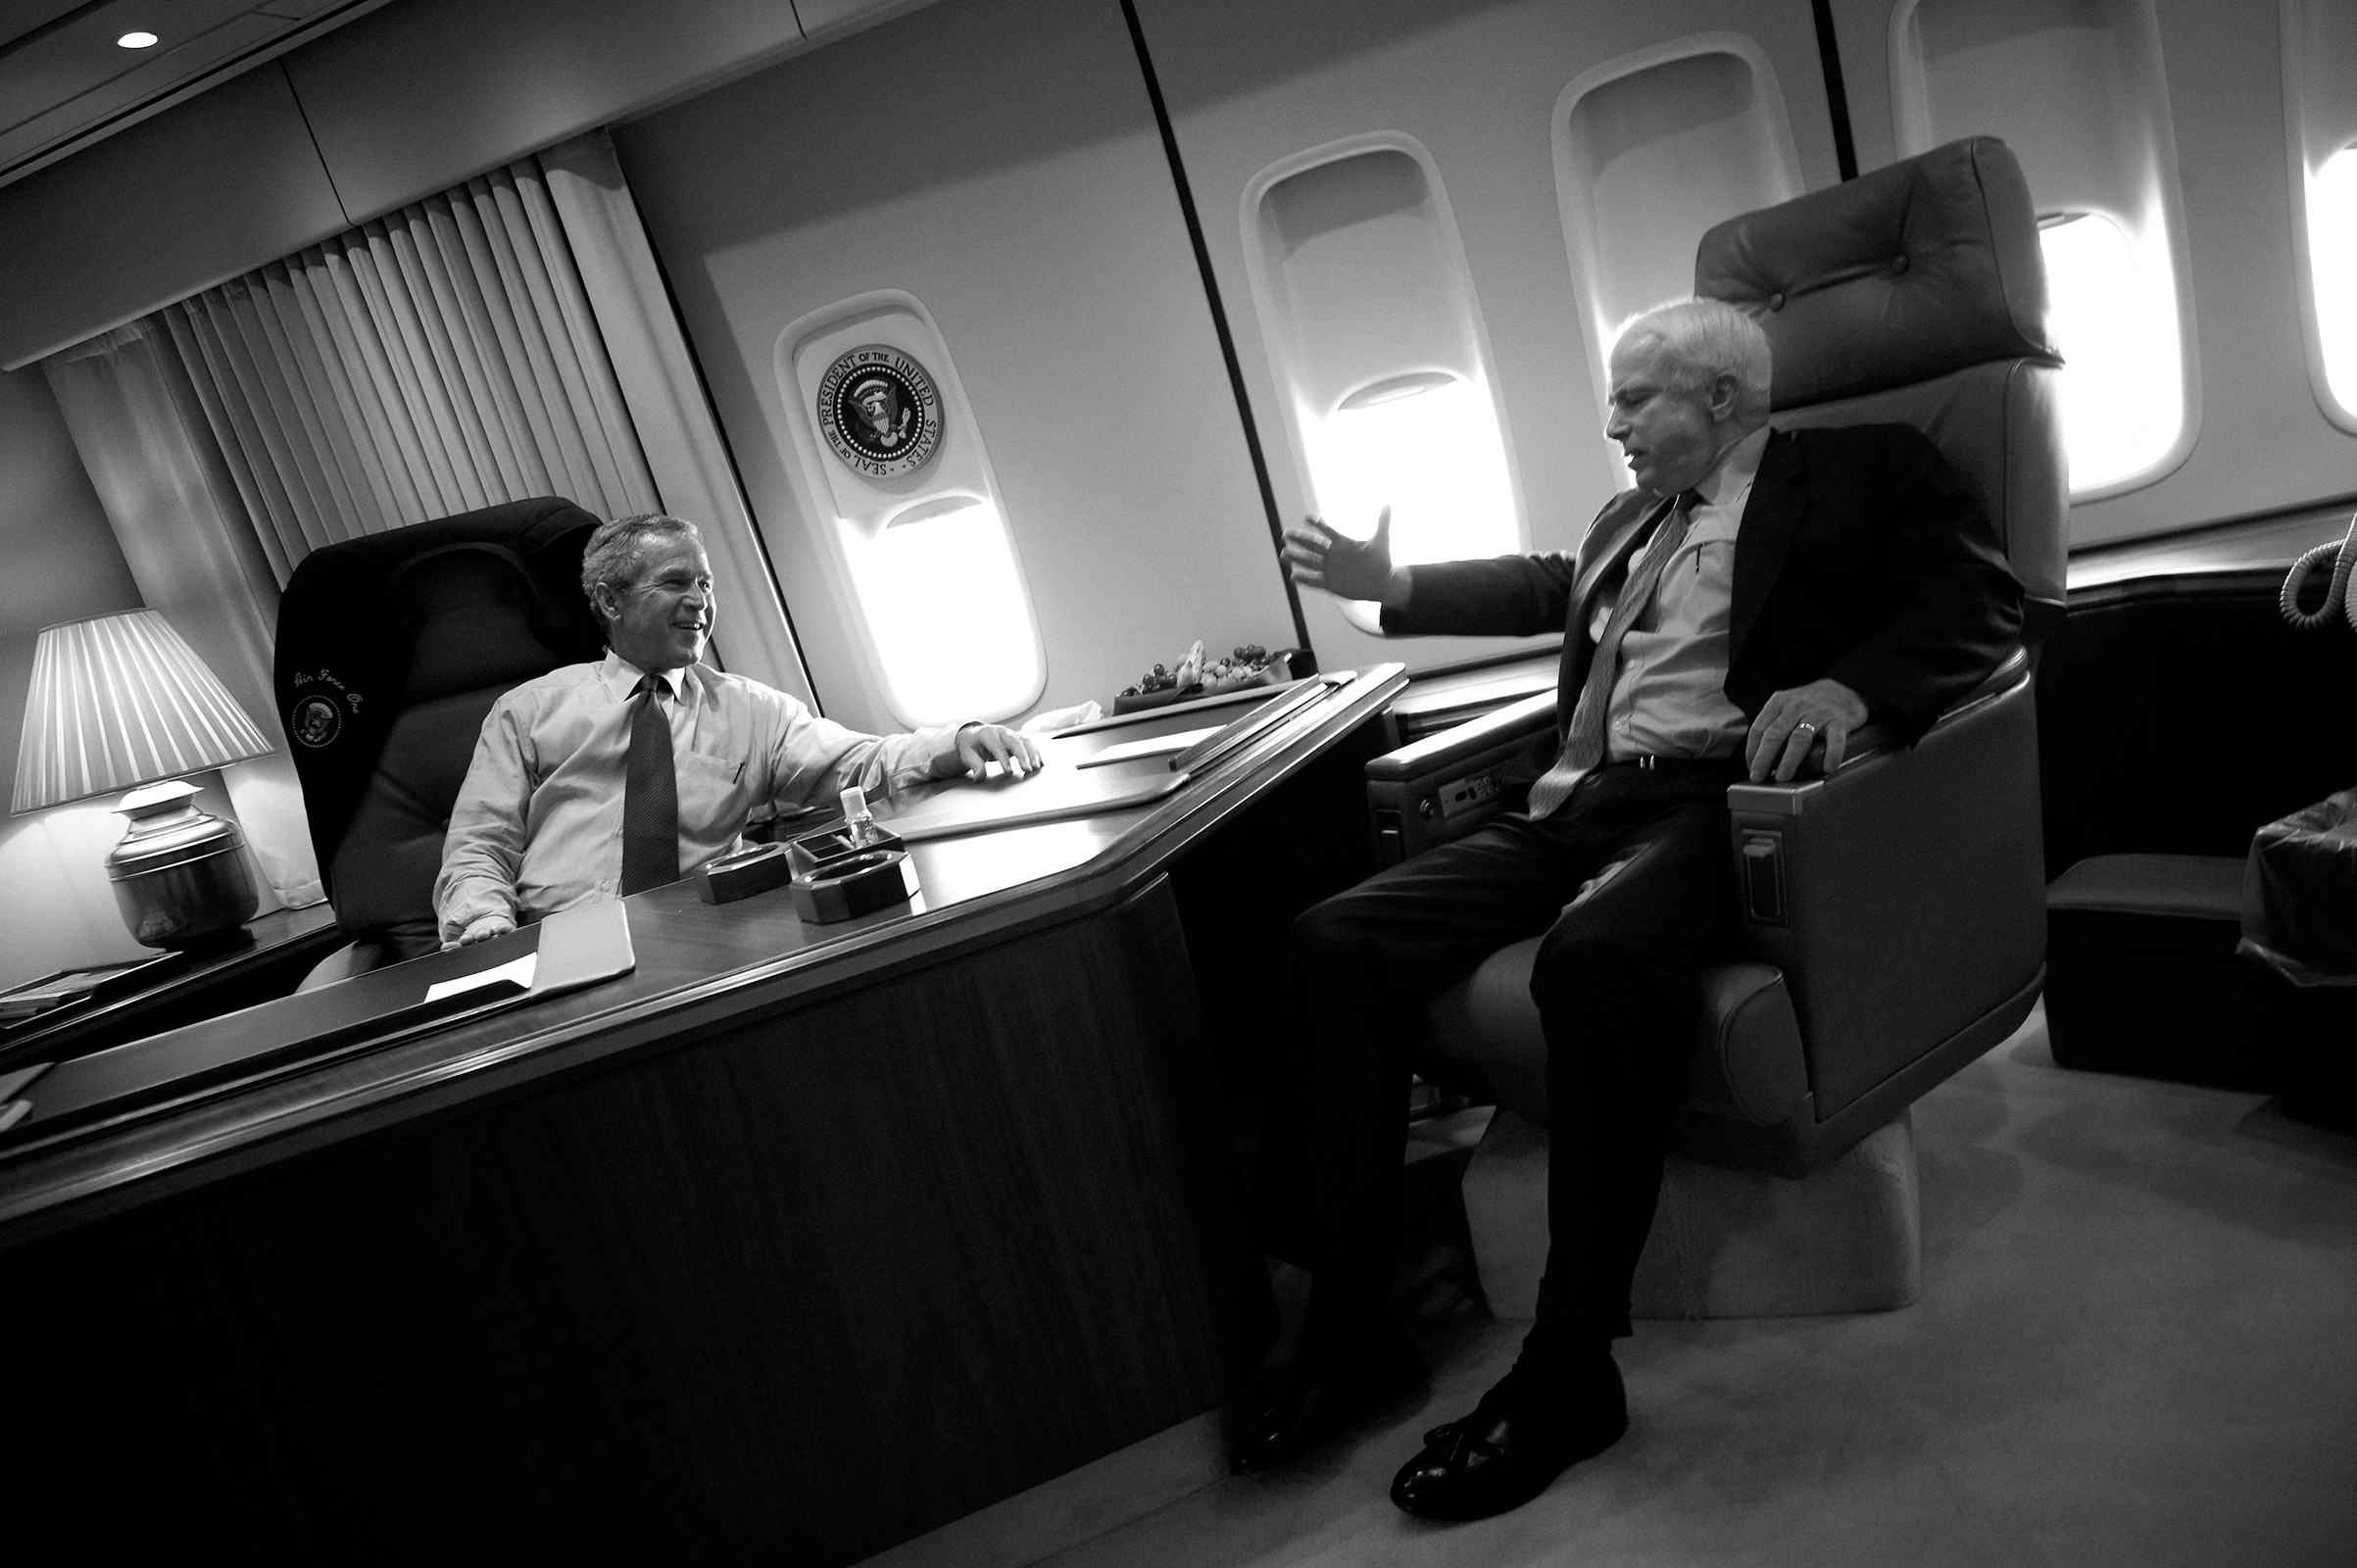 President George W. Bush with Sen. John McCain on board Air Force One on August 11, 2004.